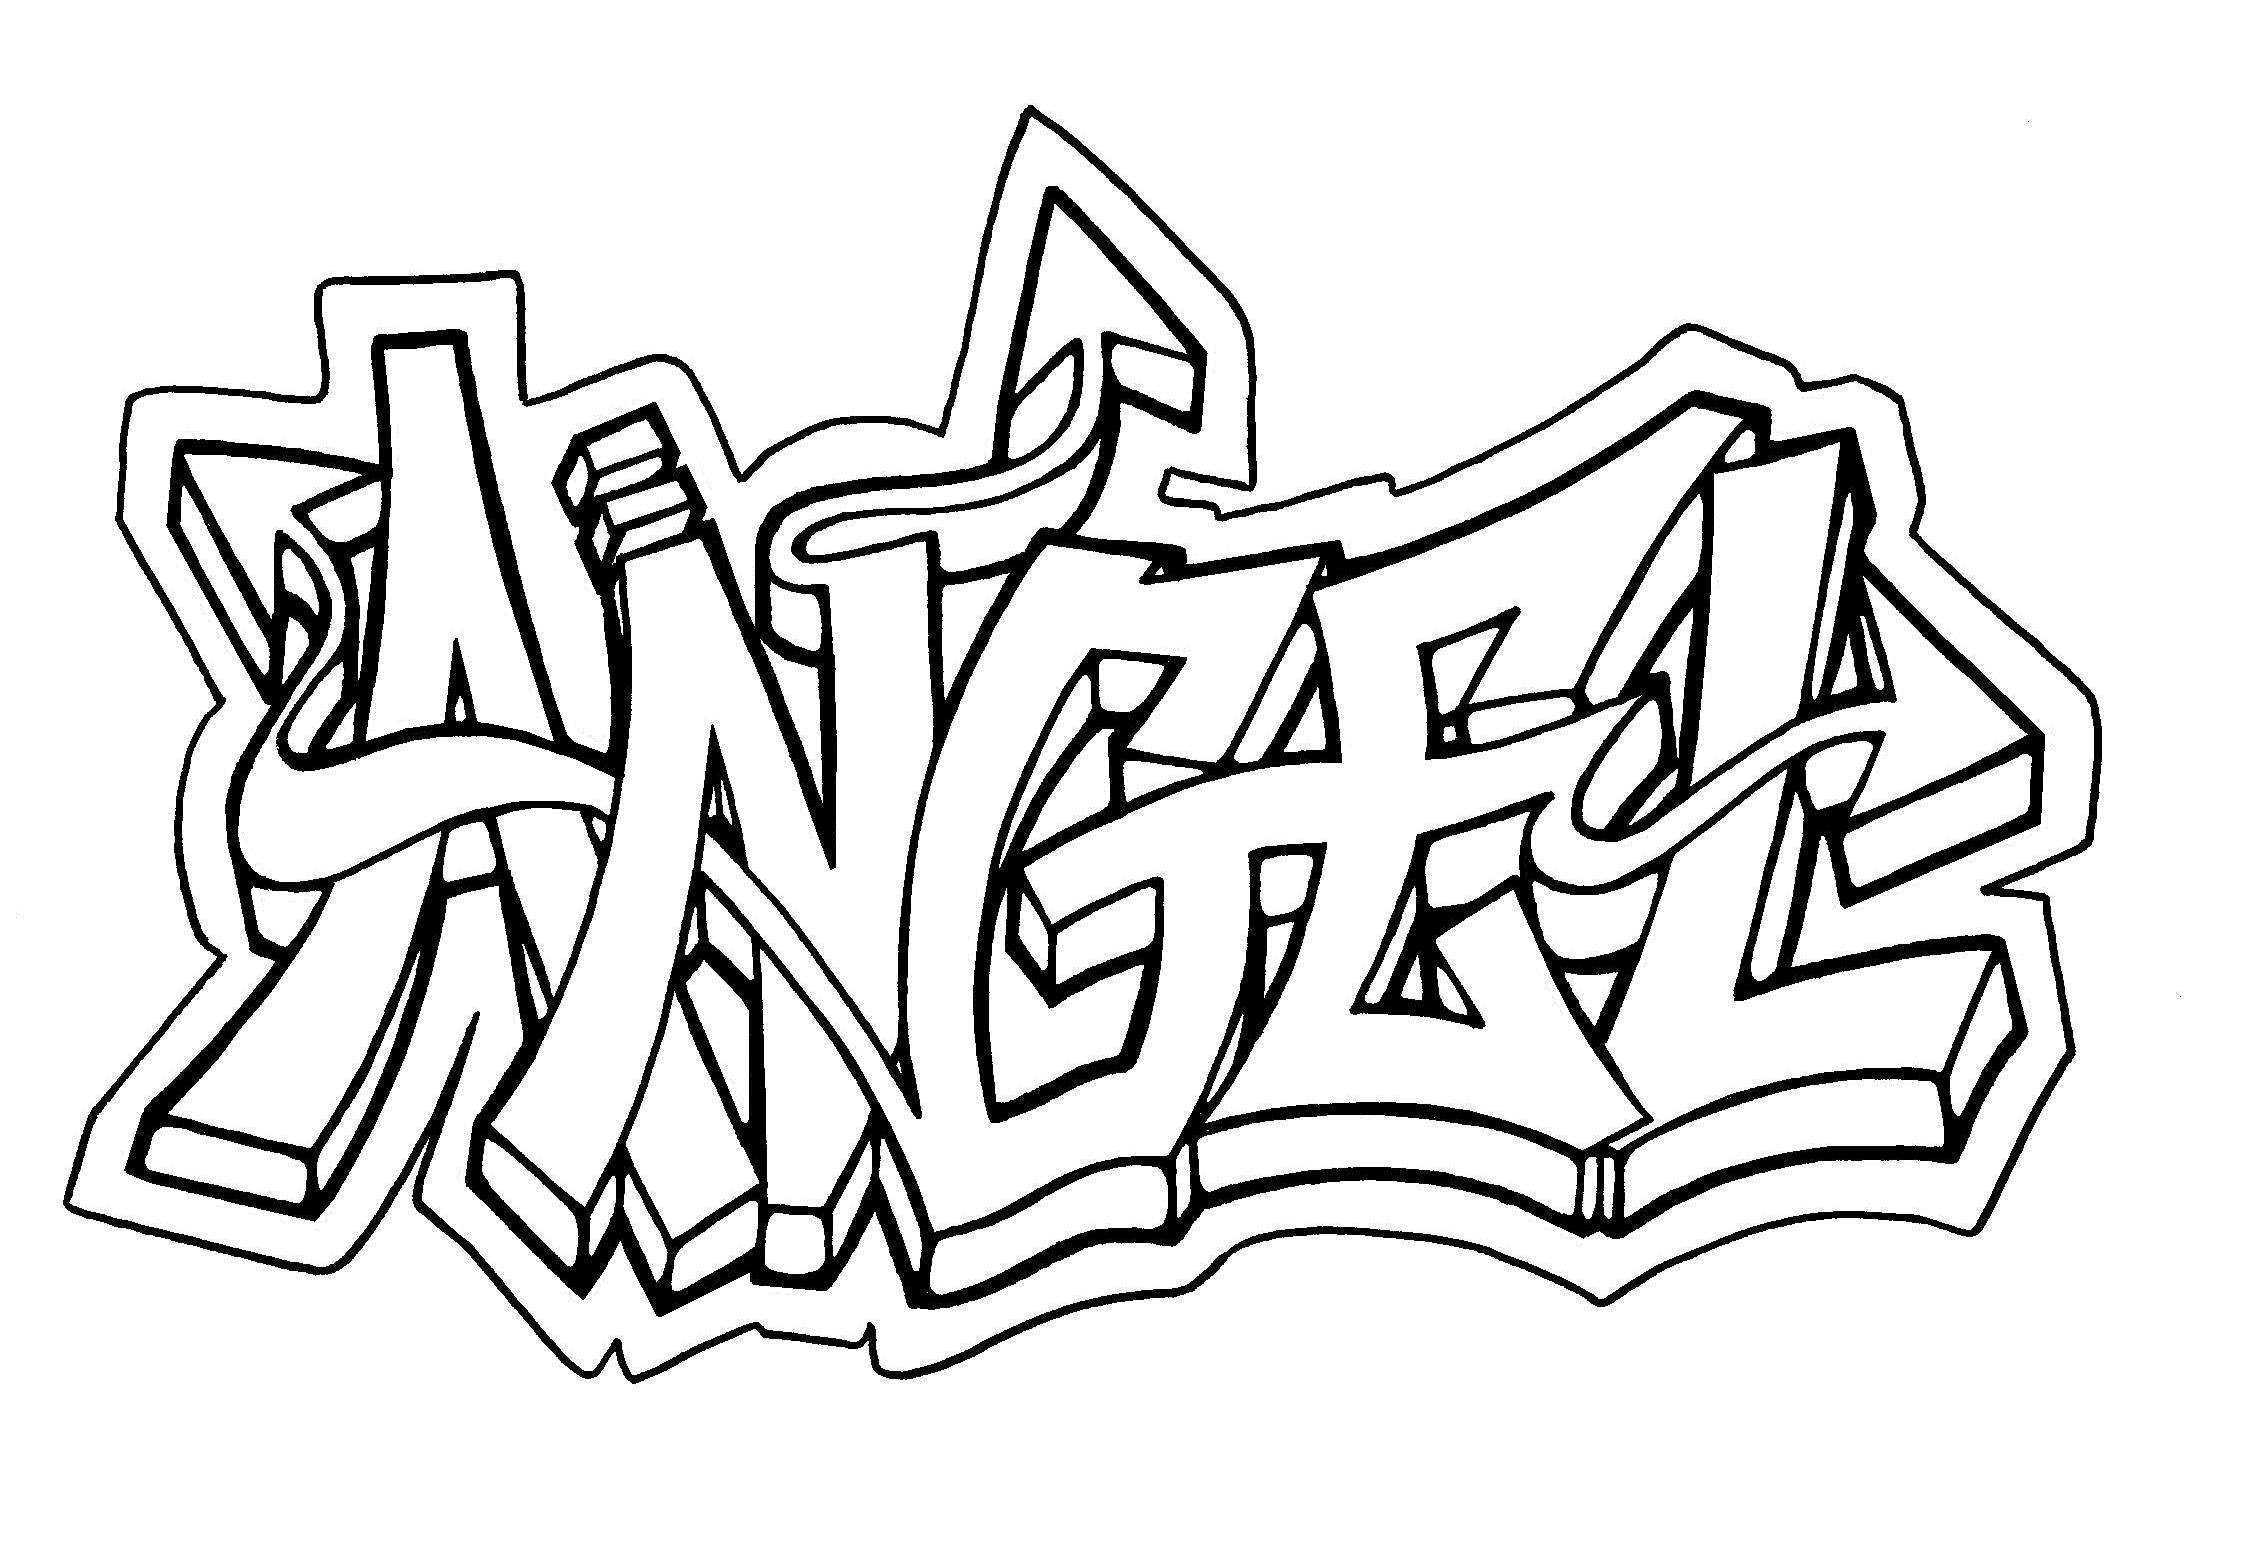 2247x1545 Graffiti Words Coloring Pages For Adults Showy Page